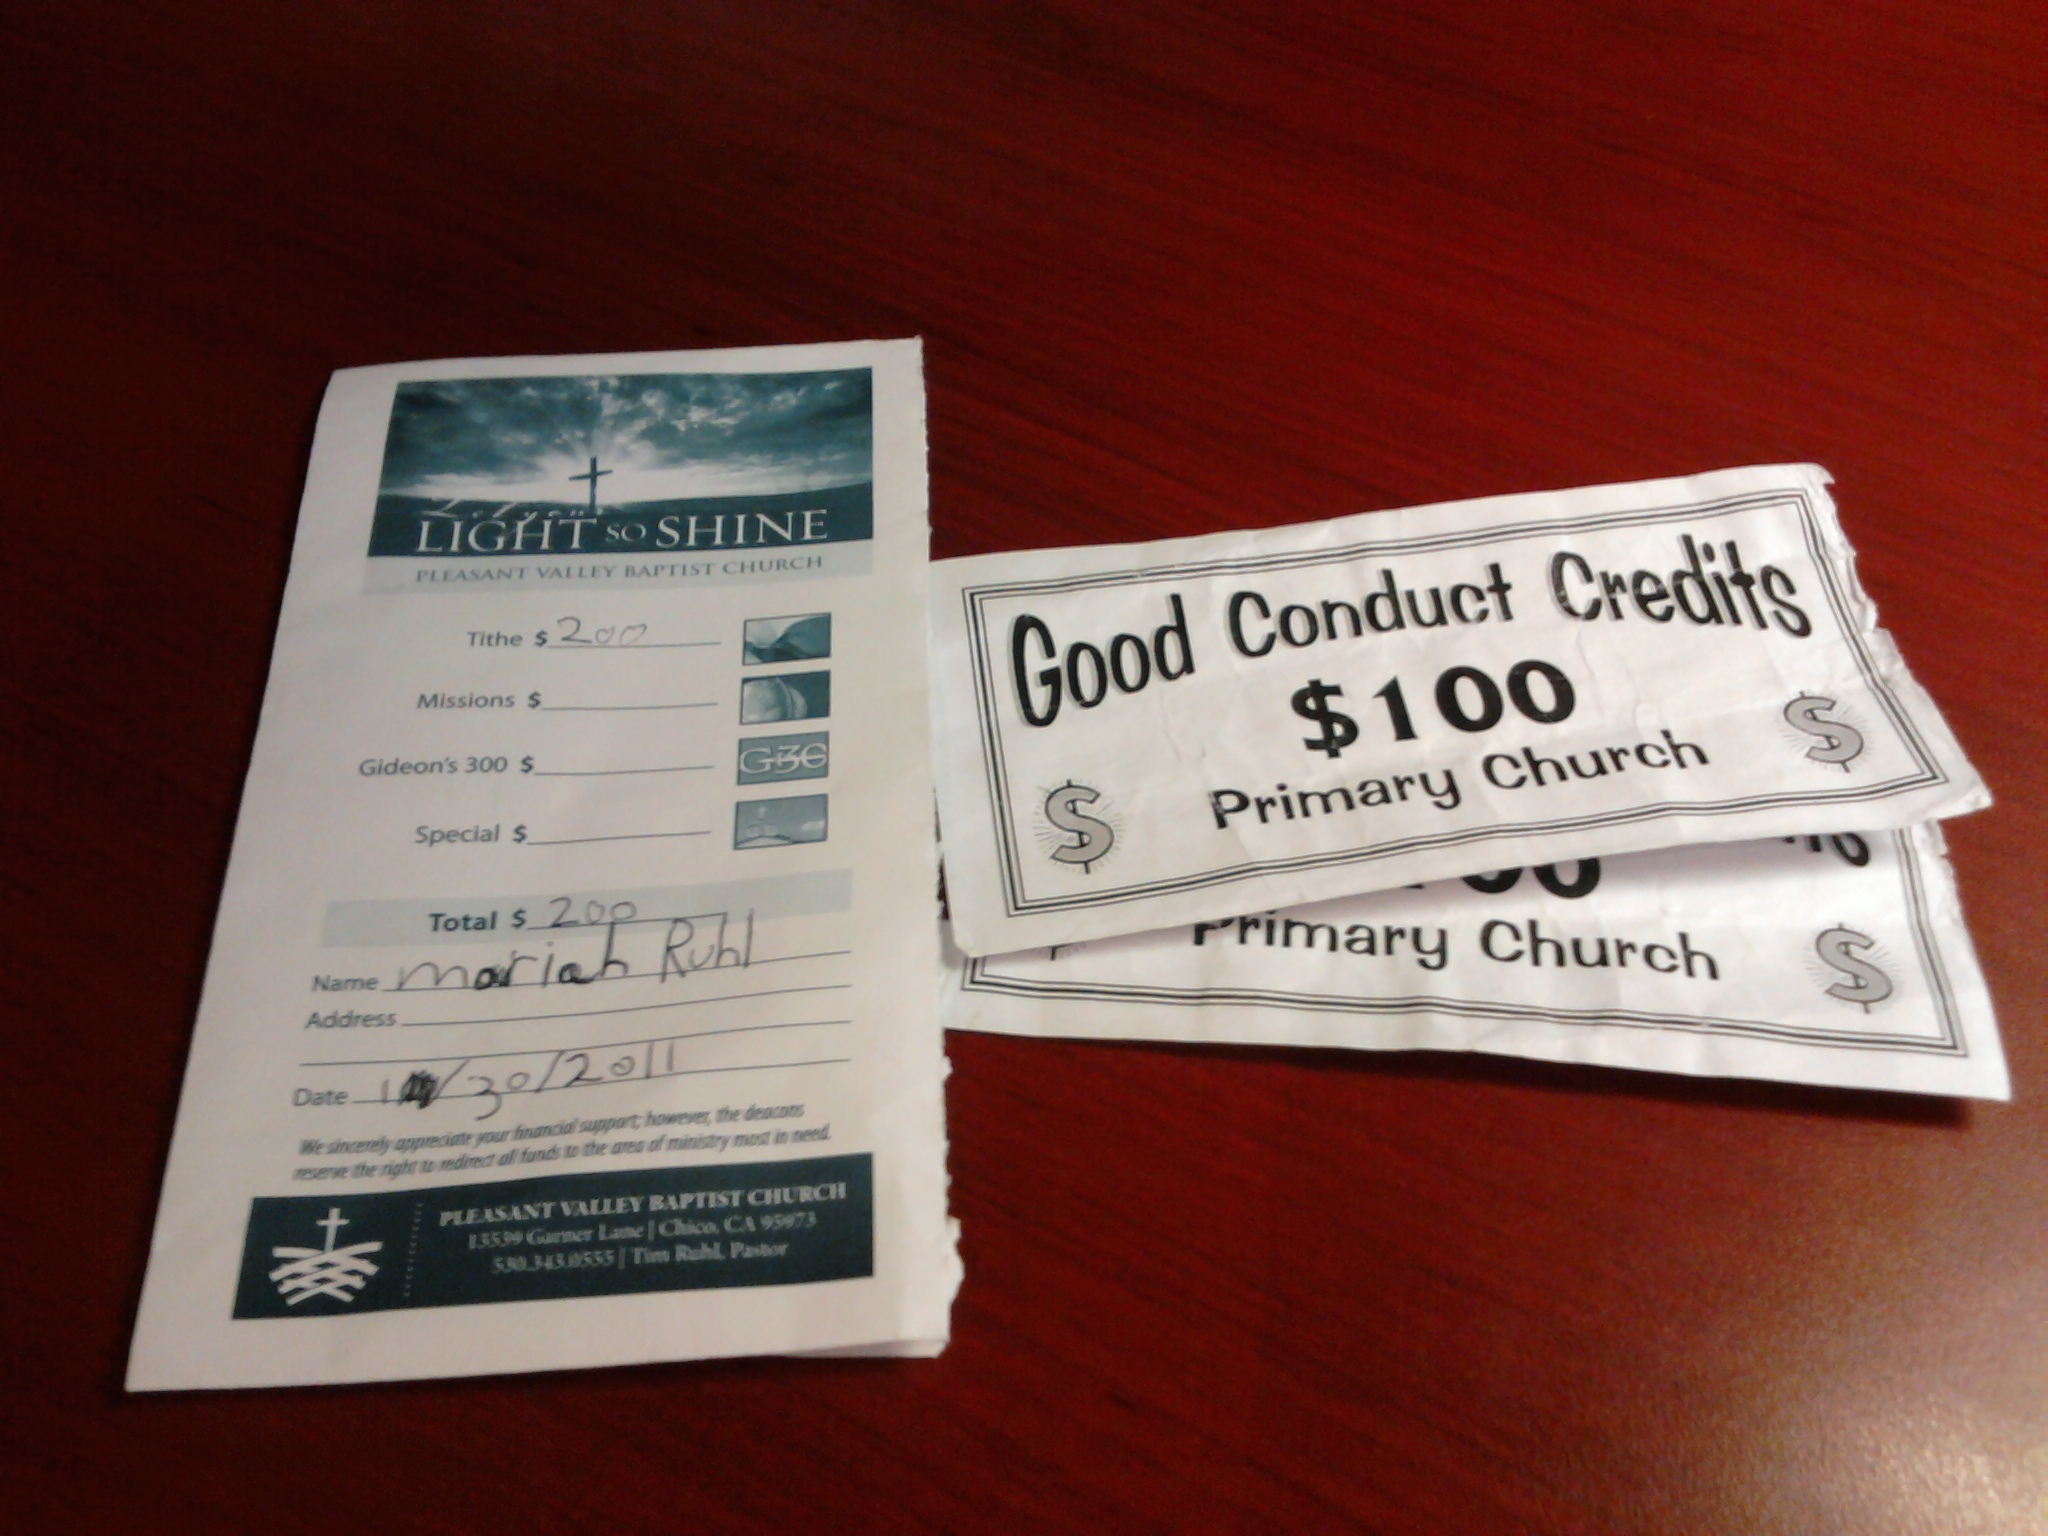 Tithing on Good Conduct Credits